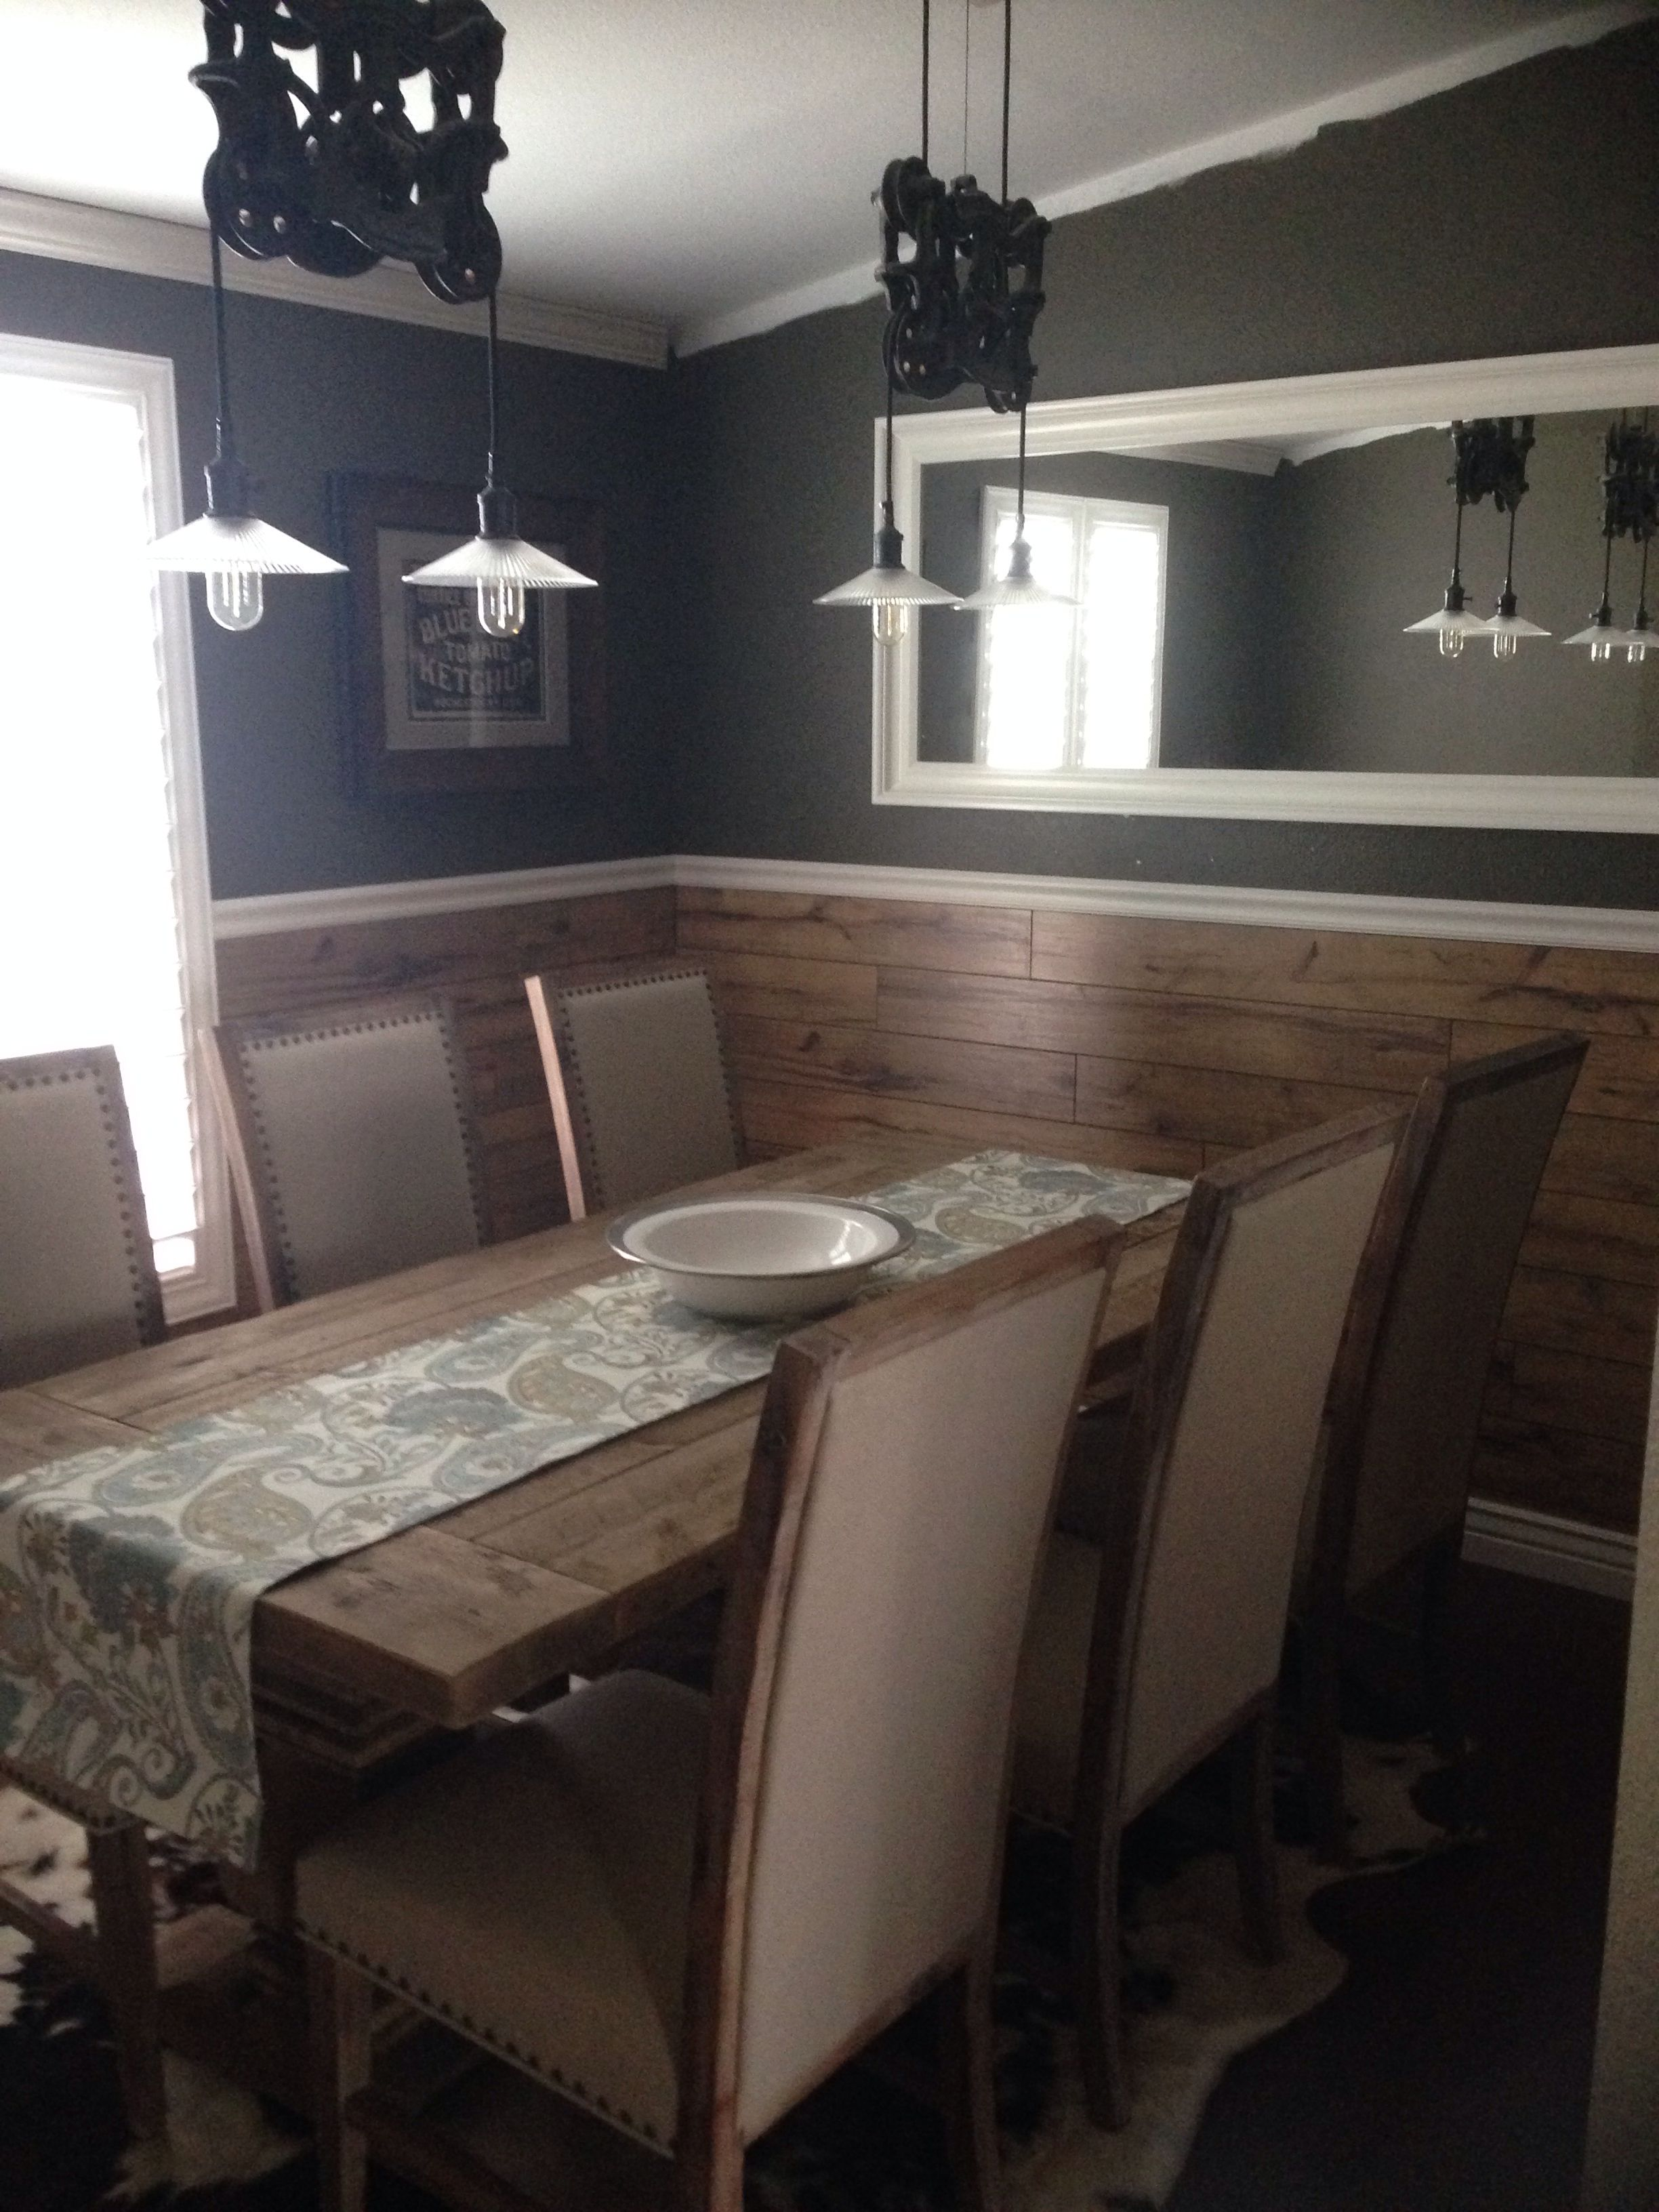 My Restoration Hardware dining room!